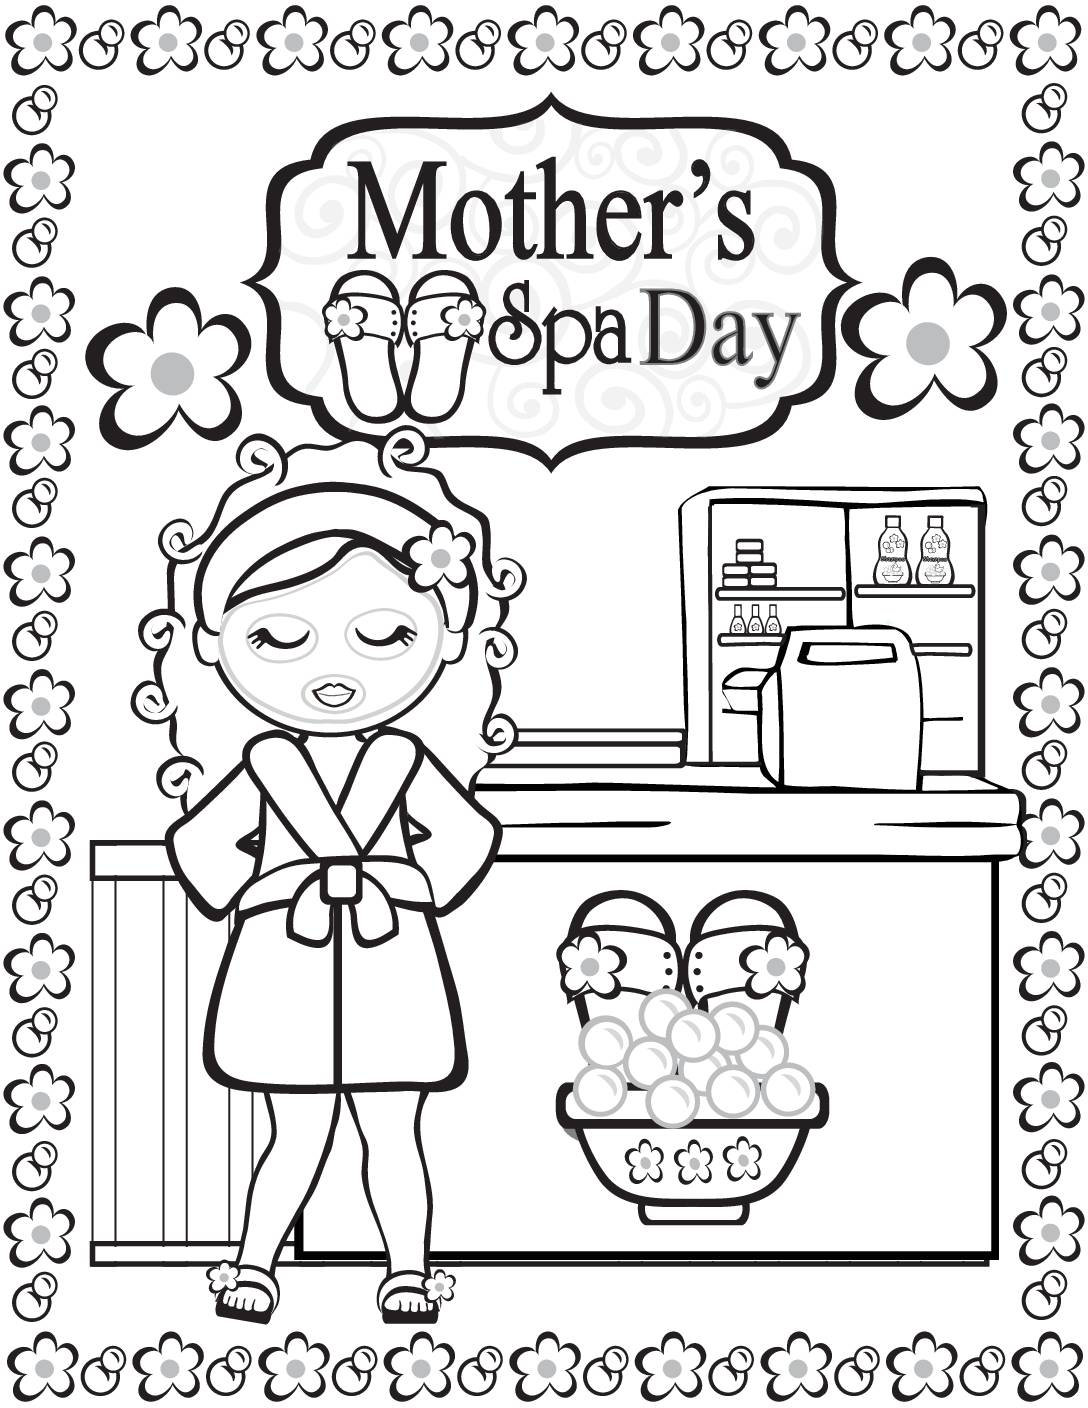 Coloring Page 3 Moms Spa Day